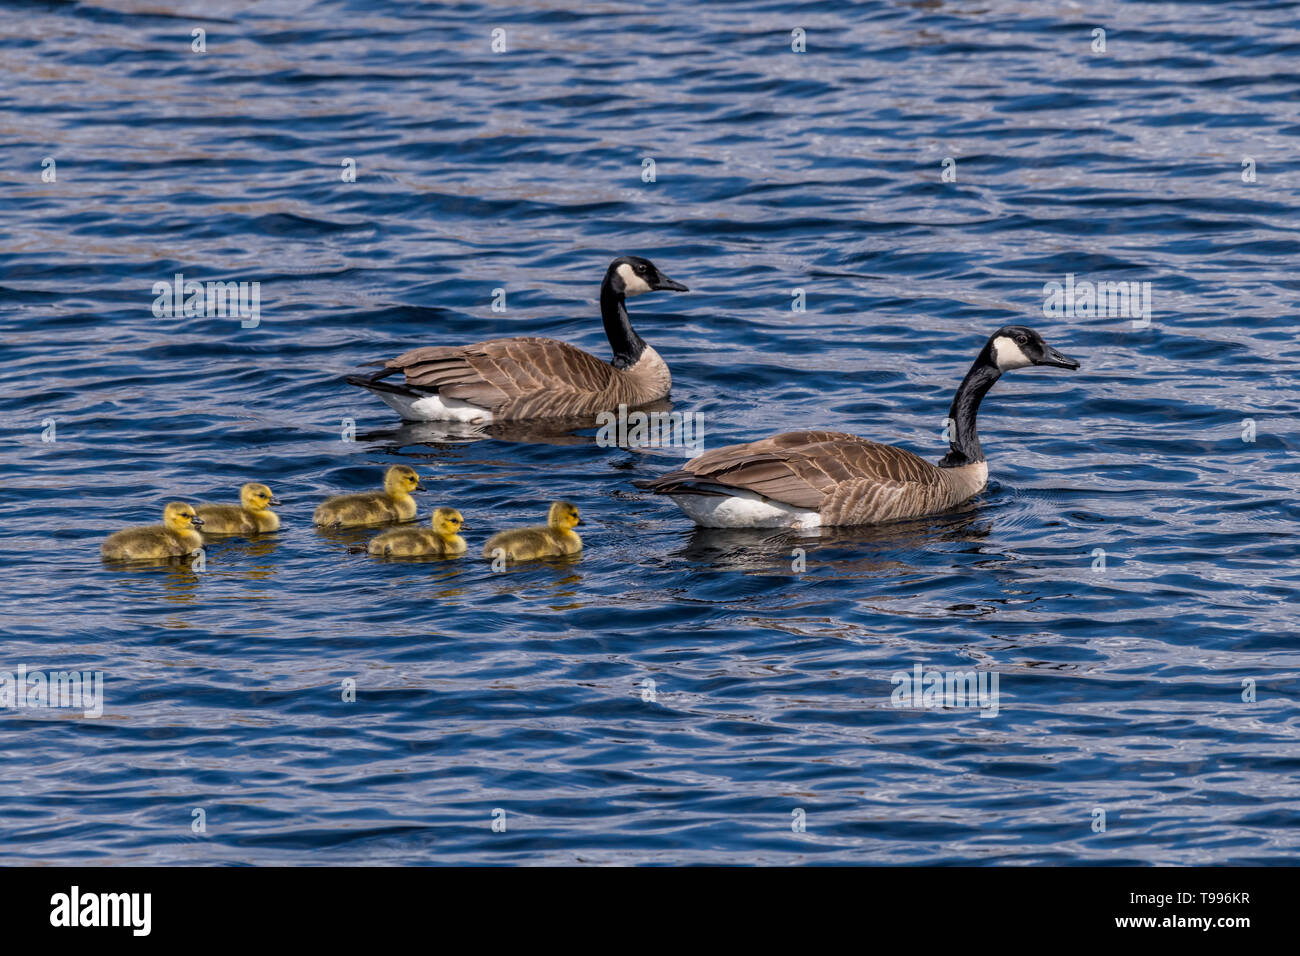 Two Canada Geese (Branta canadensis) adults and five goslings (chicks) swimming. Stock Photo